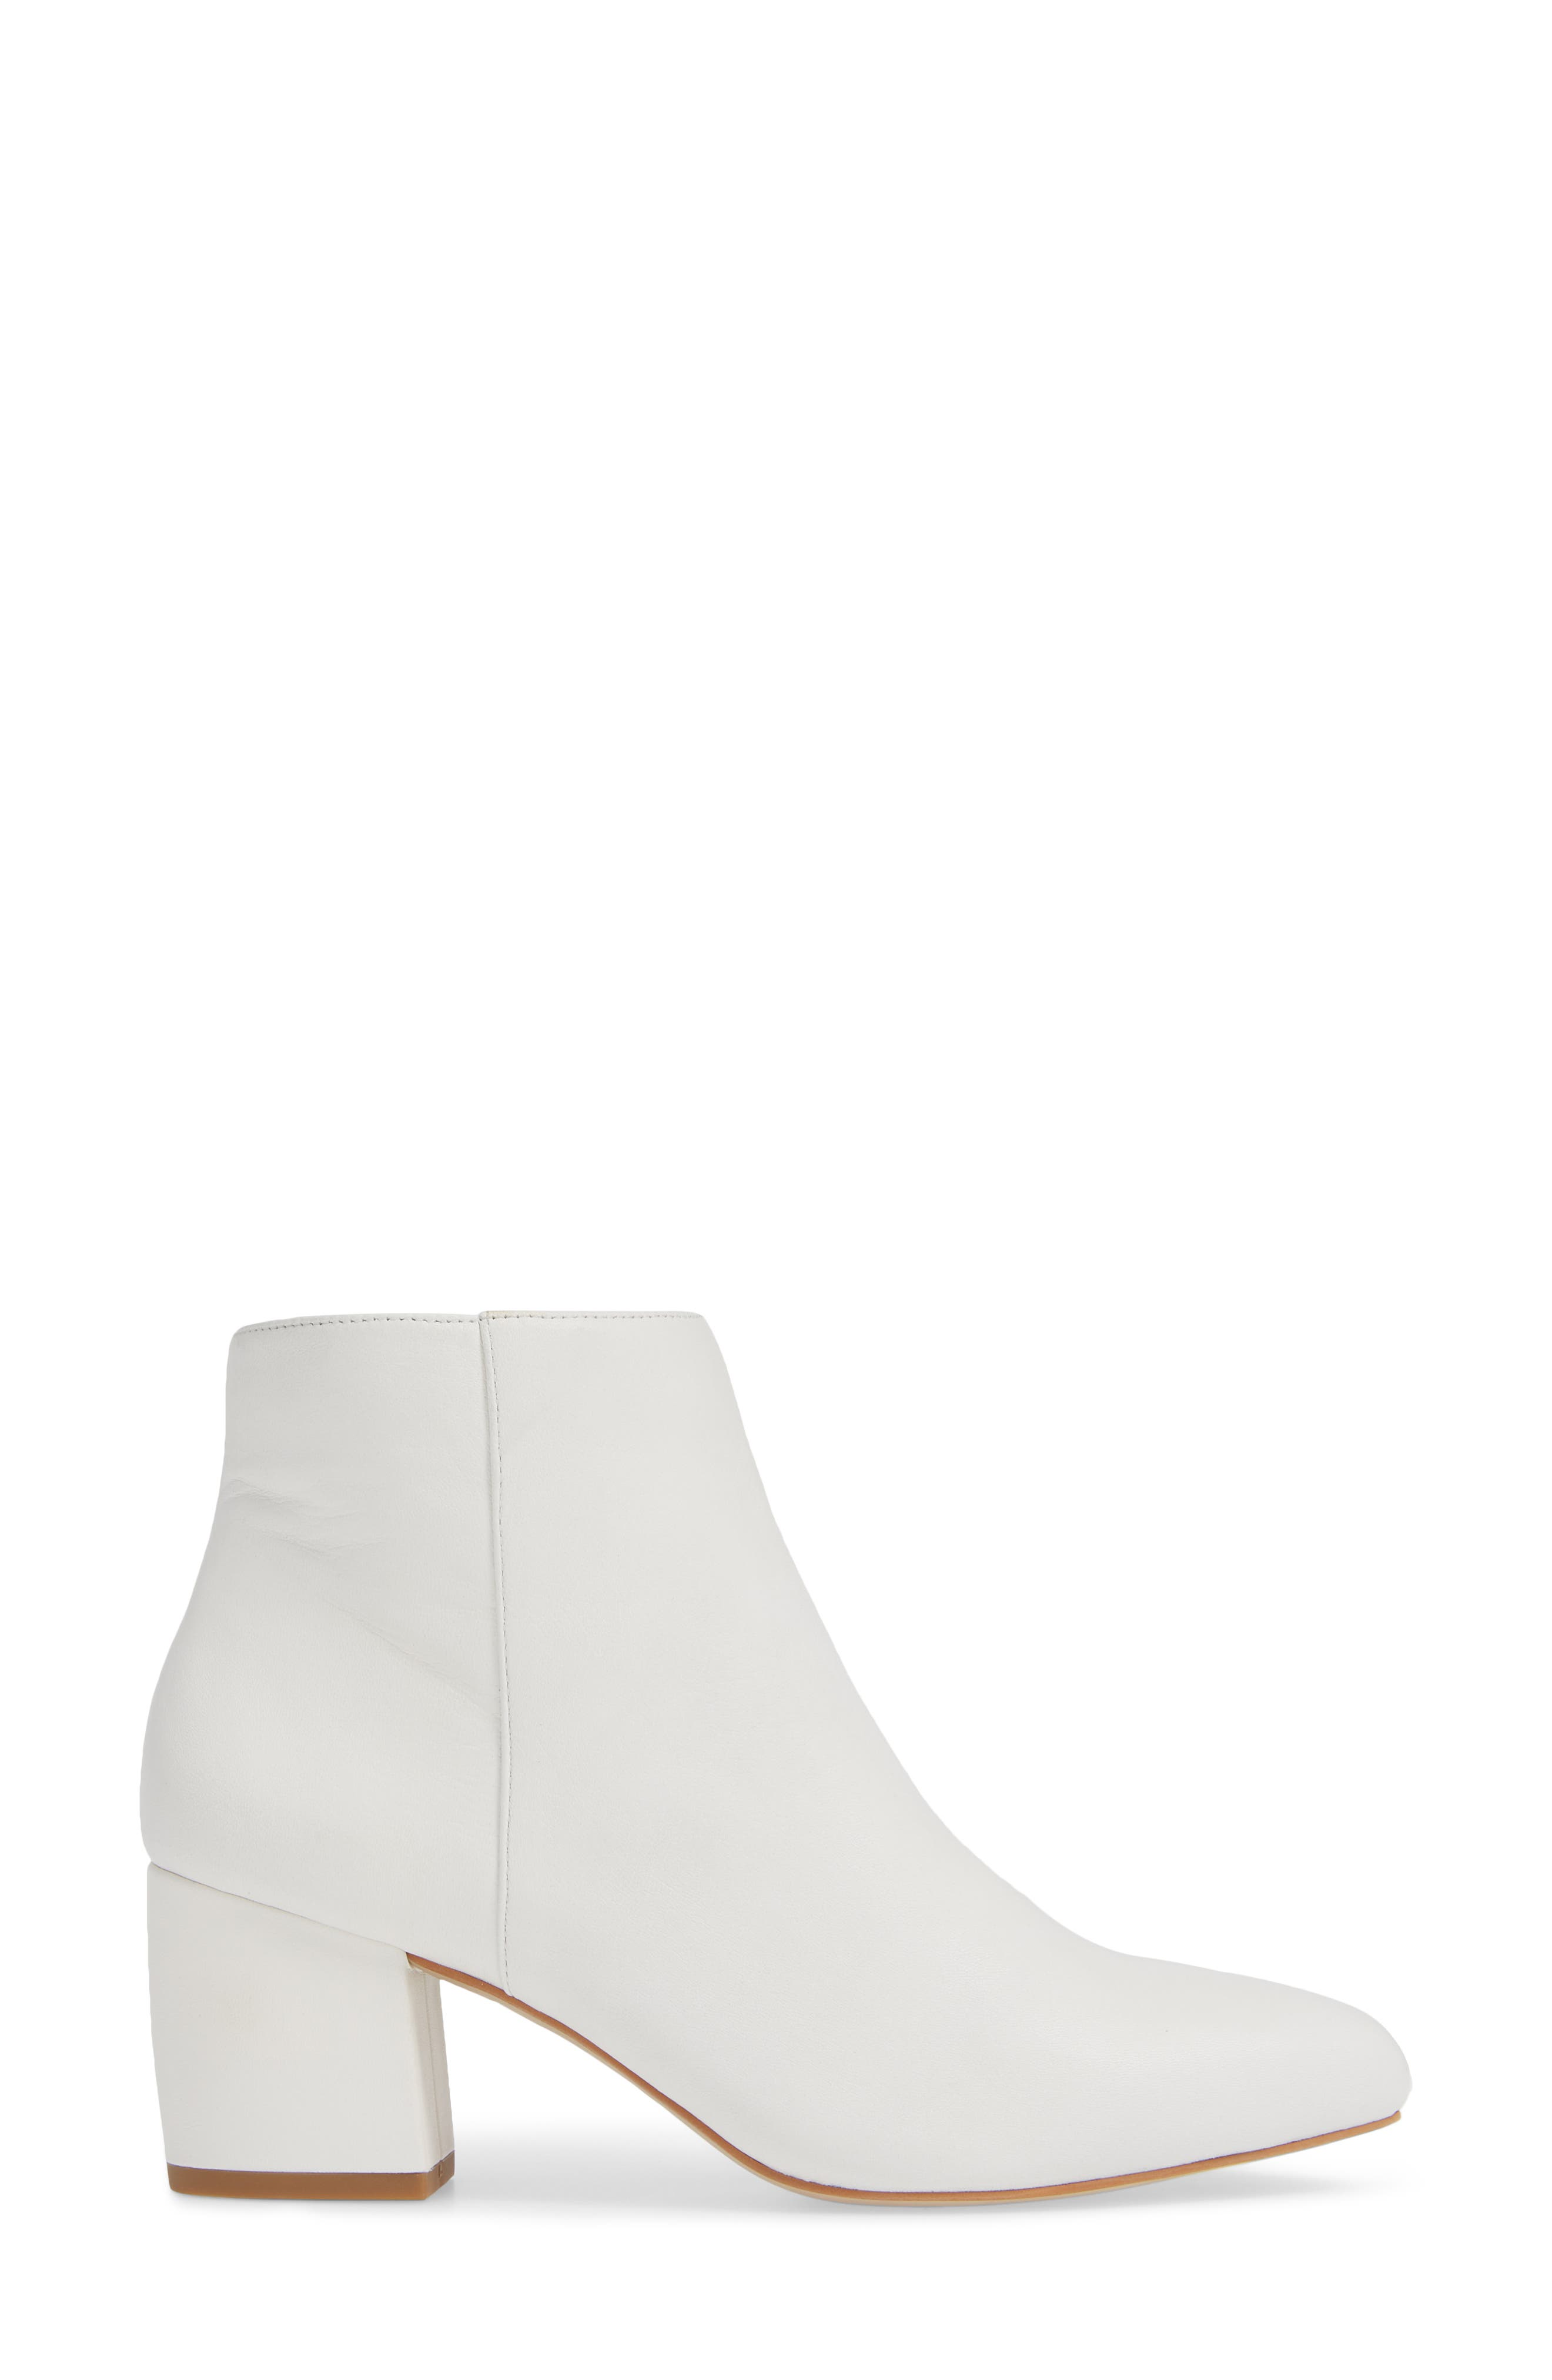 NIC+ZOE, Amorie Bootie, Alternate thumbnail 3, color, WHITE LEATHER